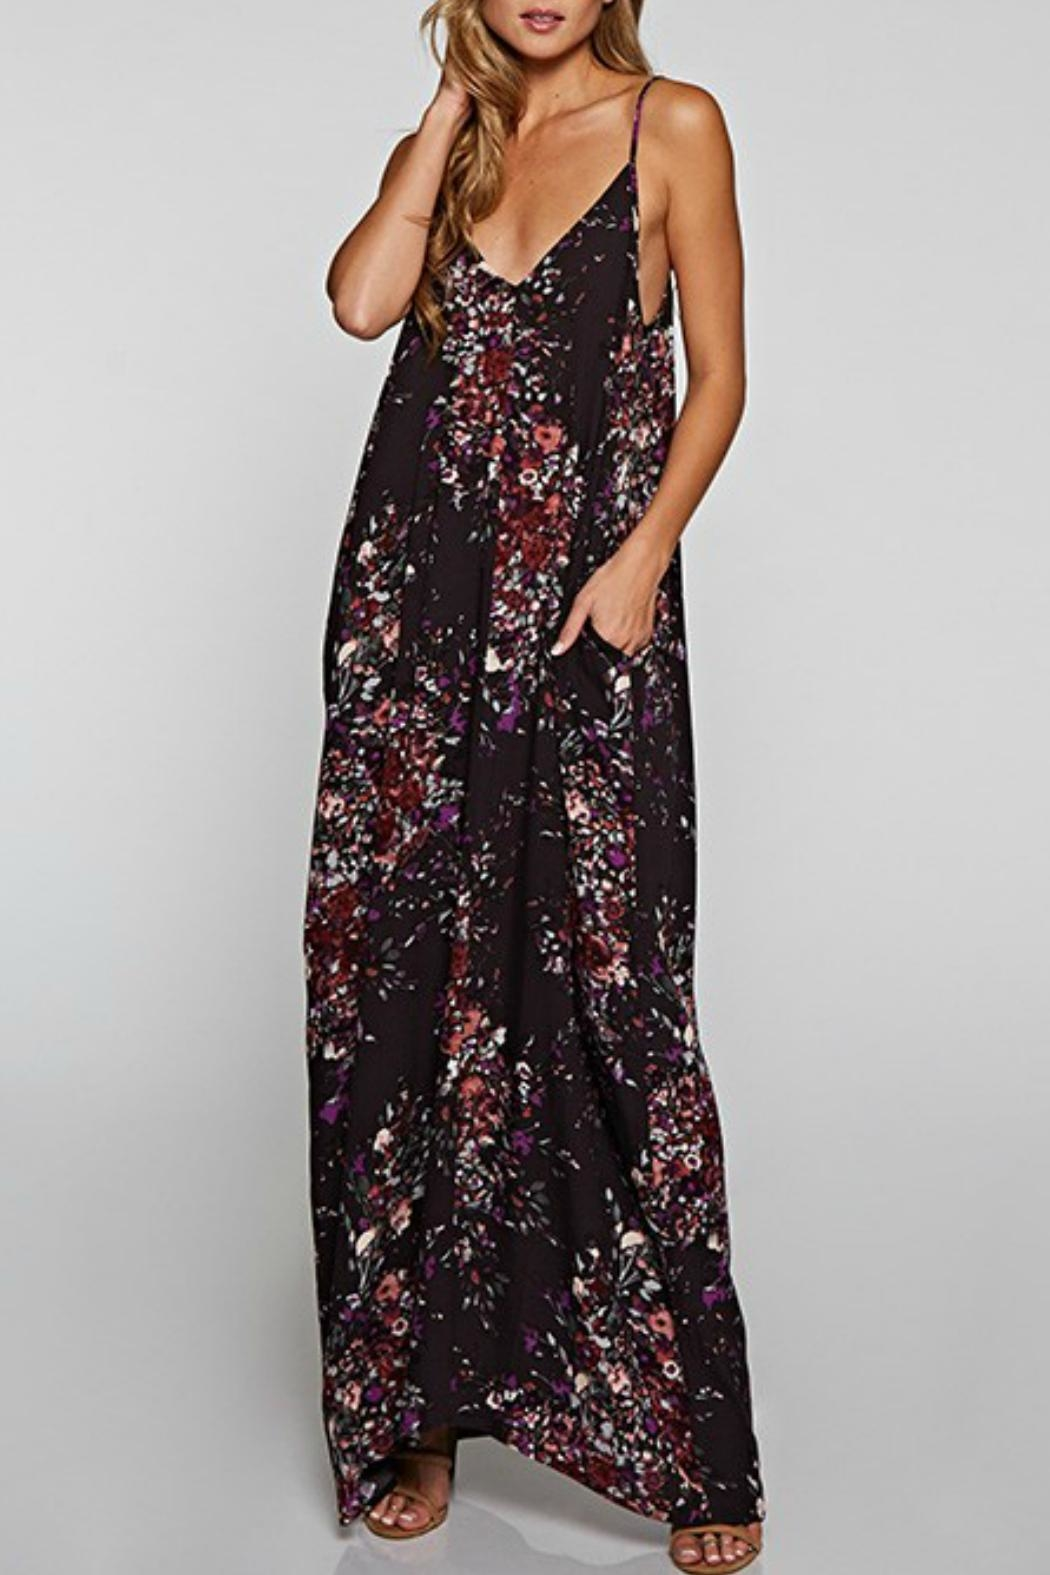 Love Stitch Floral Patterned Maxi - Main Image